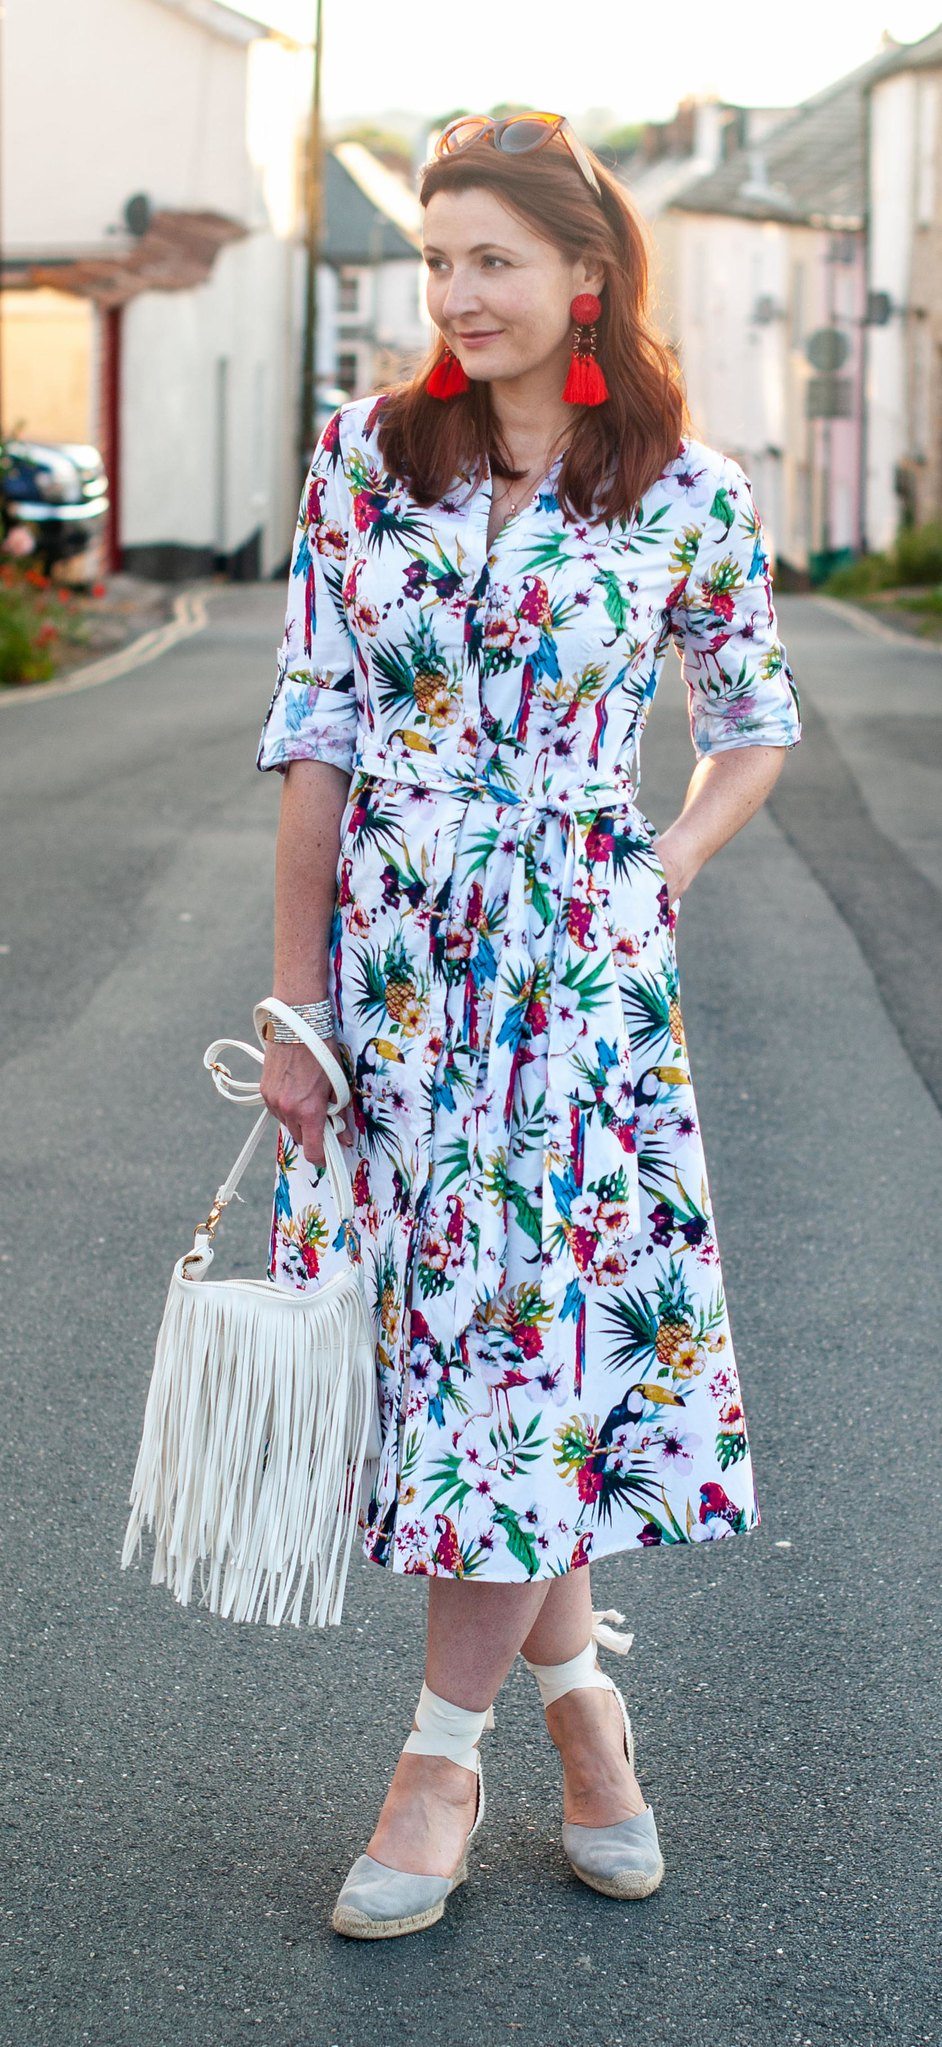 Florals With a Twist | A Loud Birds & Tropical Print \ tropical print midi shirt dress \ grey lace-up espadrilles \ red tassel rarrings \ white fringed crossbody bag | Not Dressed As Lamb, over 40 style